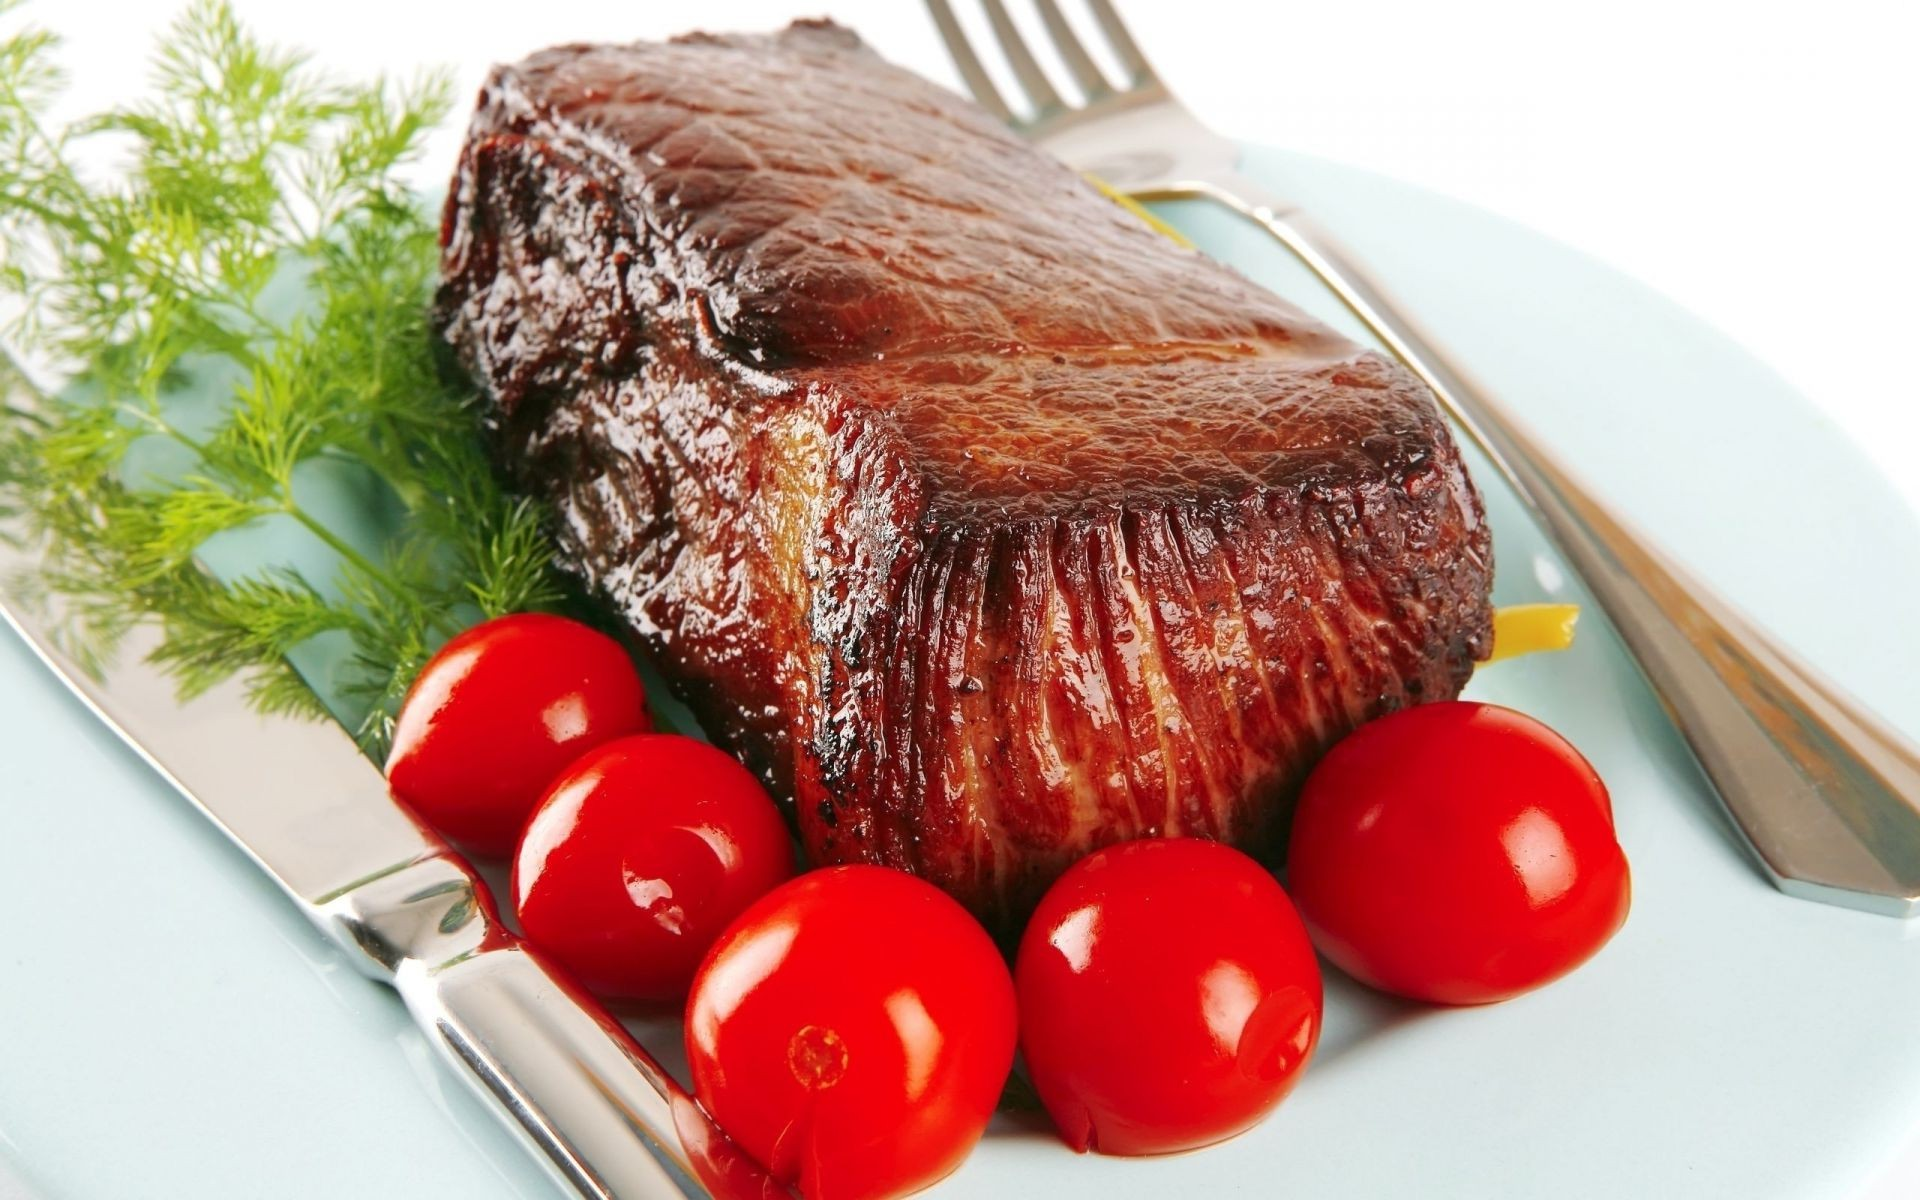 food & drink food dinner meat delicious beef pepper meal cooking juicy close-up healthy dish nutrition epicure cuisine plate tasty tomato lunch